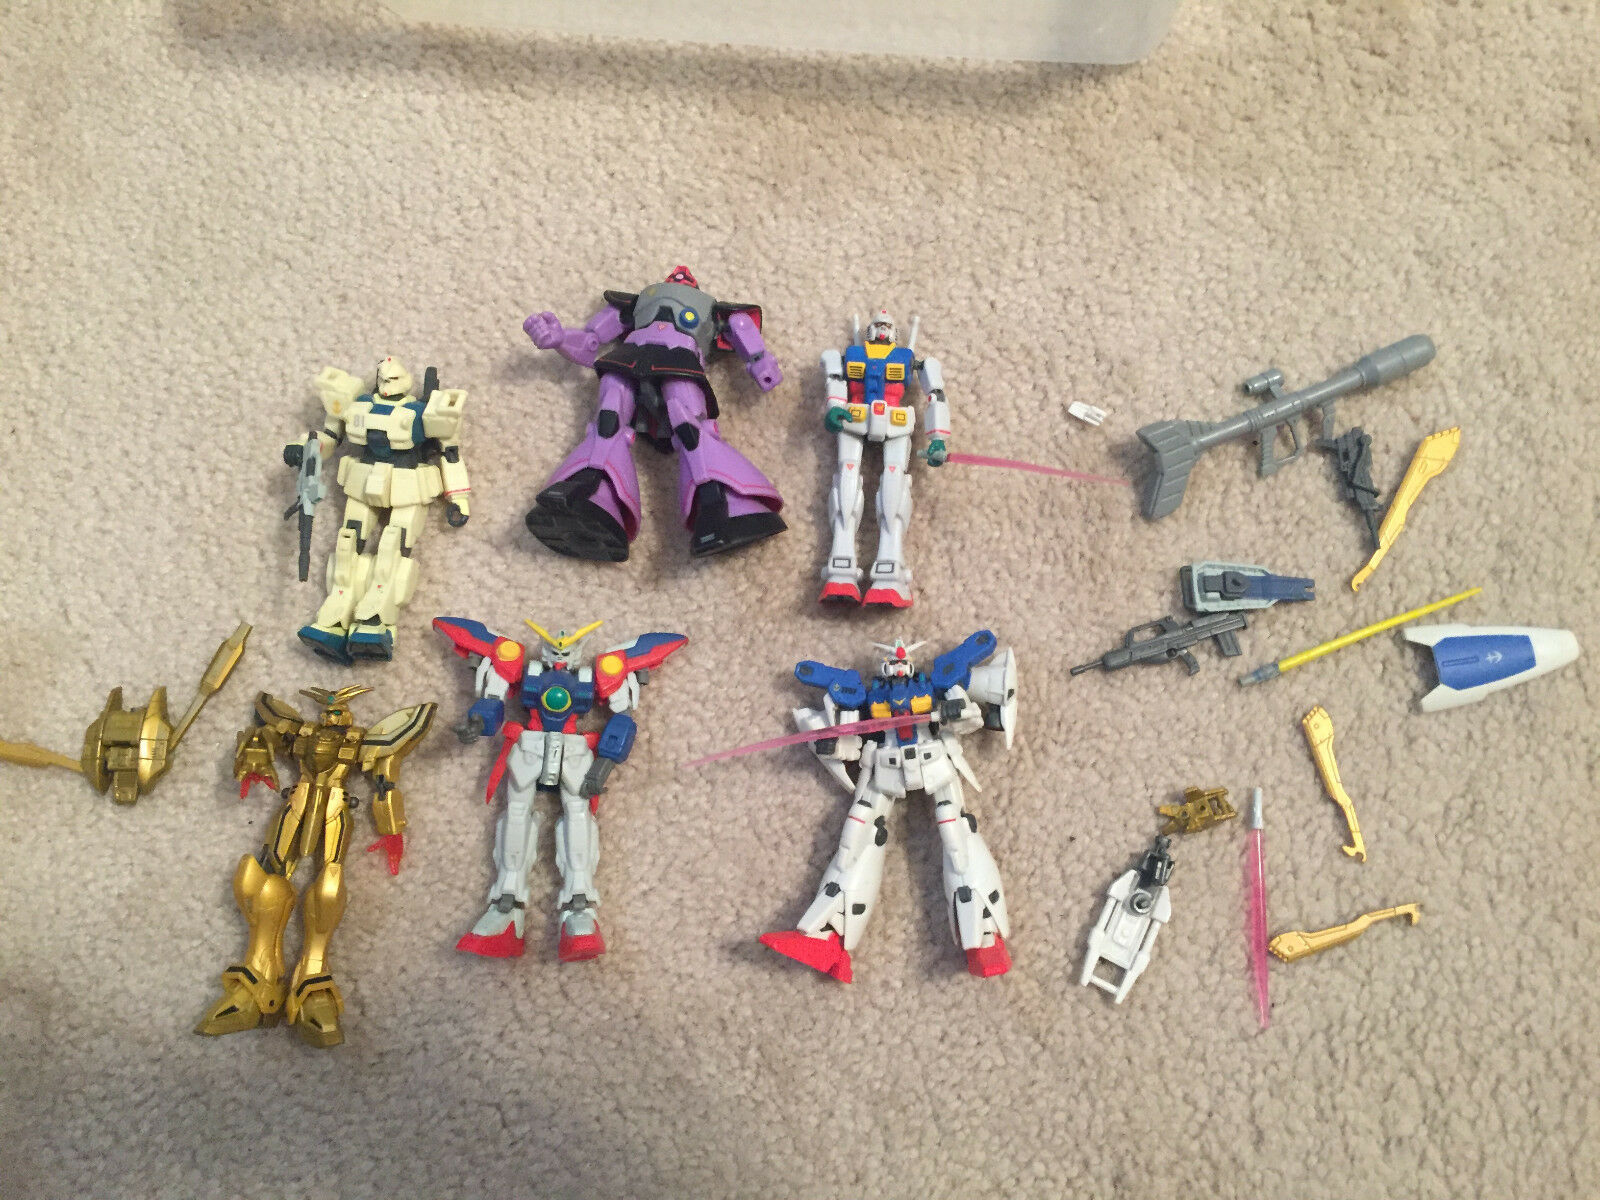 GUNDAM FIGURES ROBOT LOT WITH WEAPONS ANIME BANDAI 3.5 3.5 3.5 INCHES e70a64